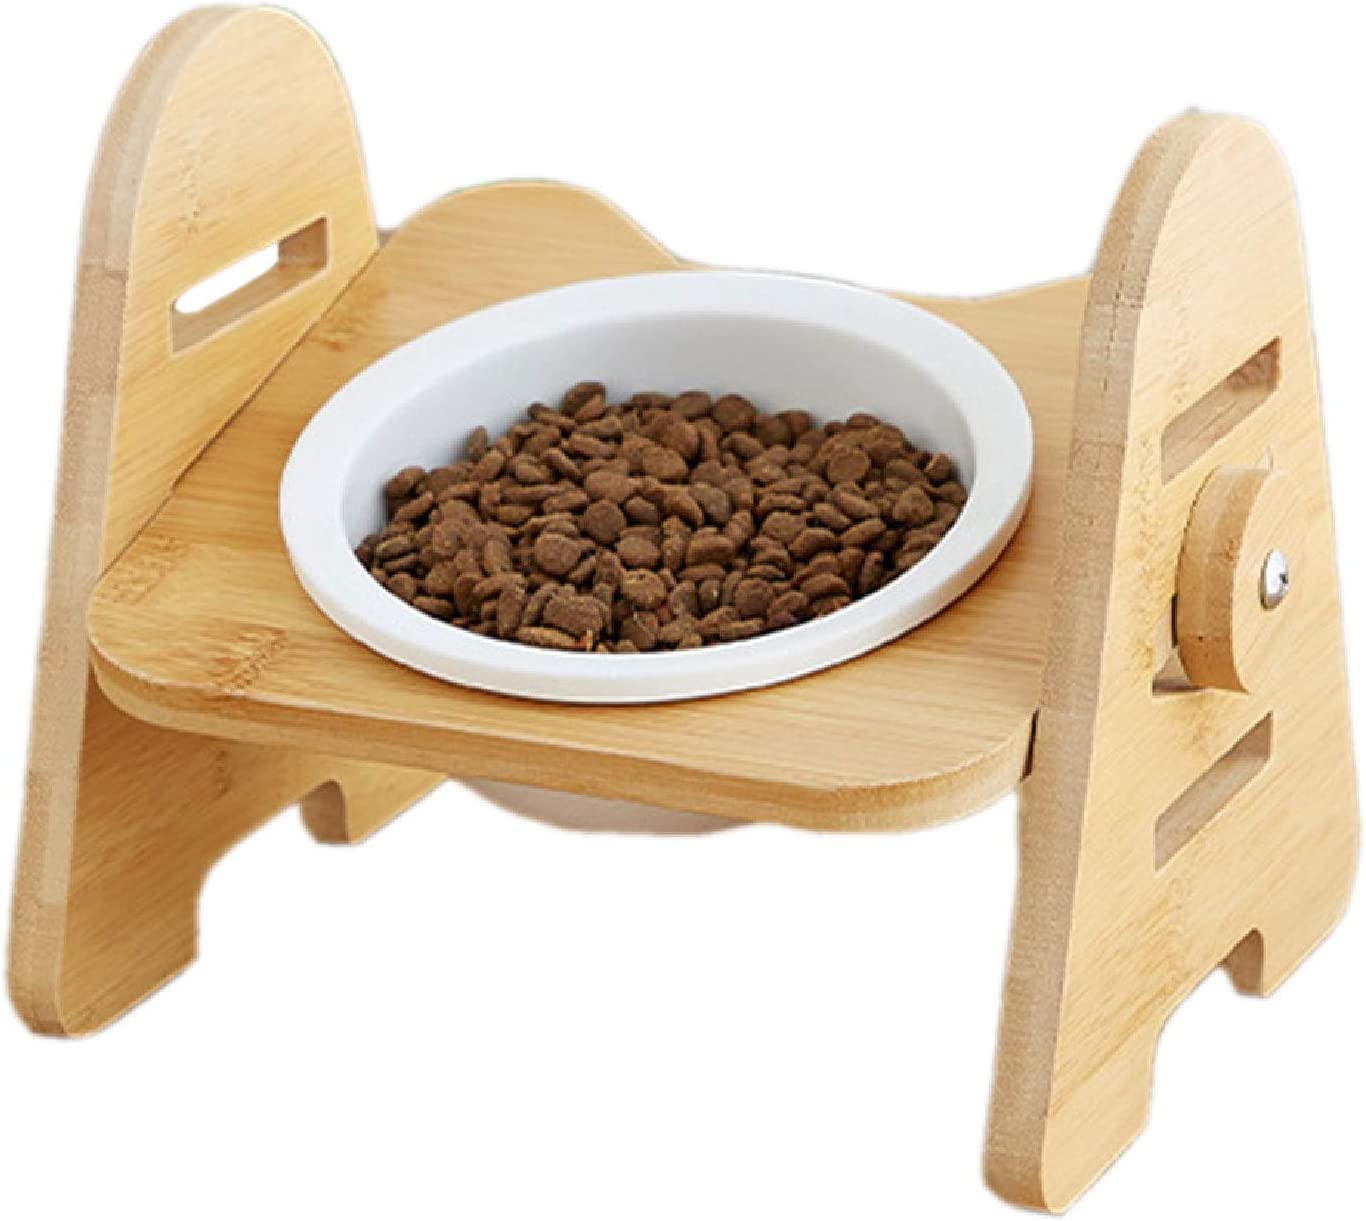 JFF Nashville-Davidson Mall Elevated Dogs and Cats Feeder Excellent Raised Stand with Bowl Single